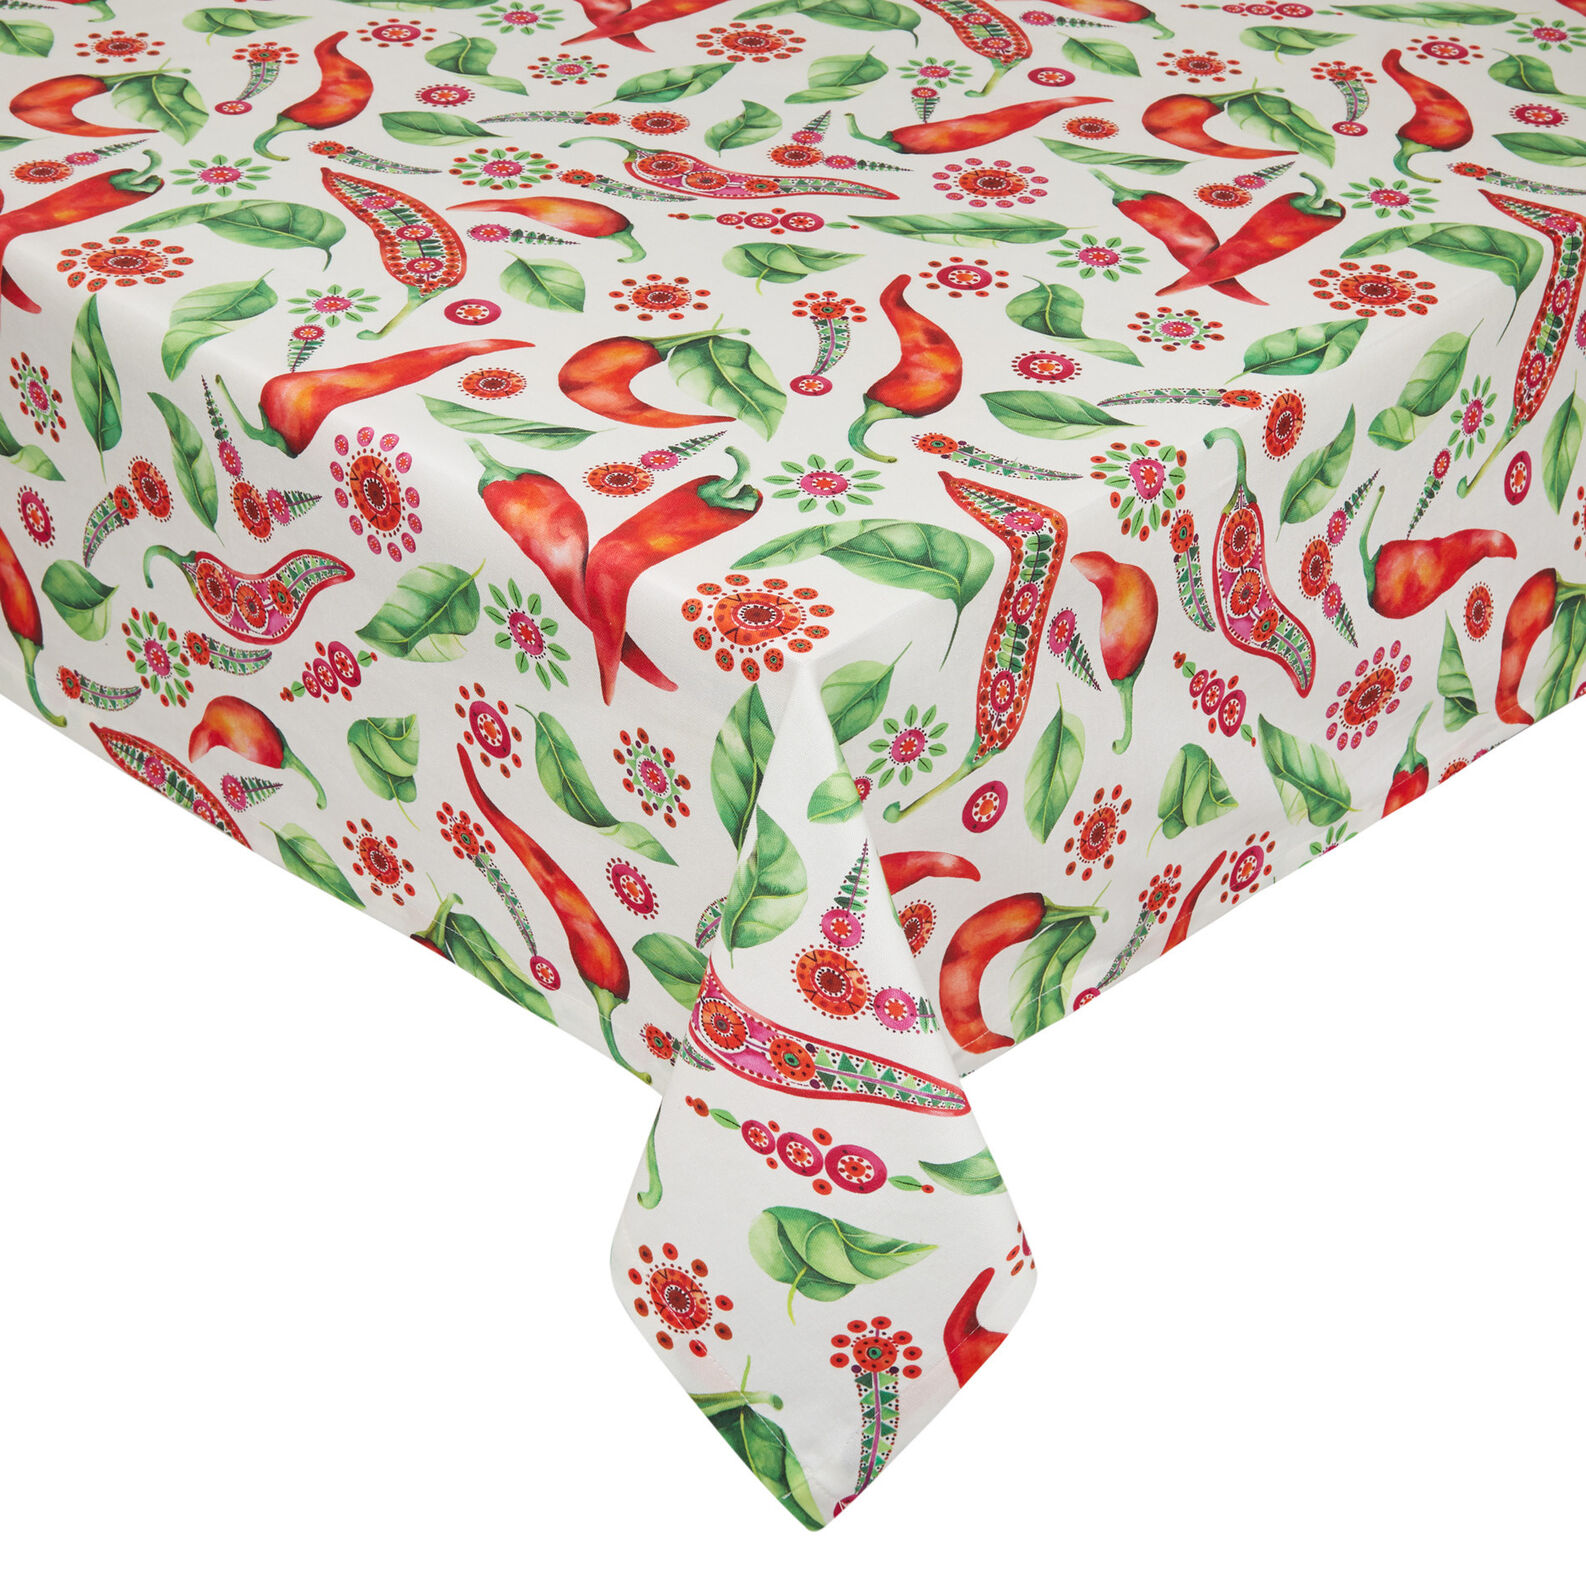 100% cotton tablecloth with chilli pepper print